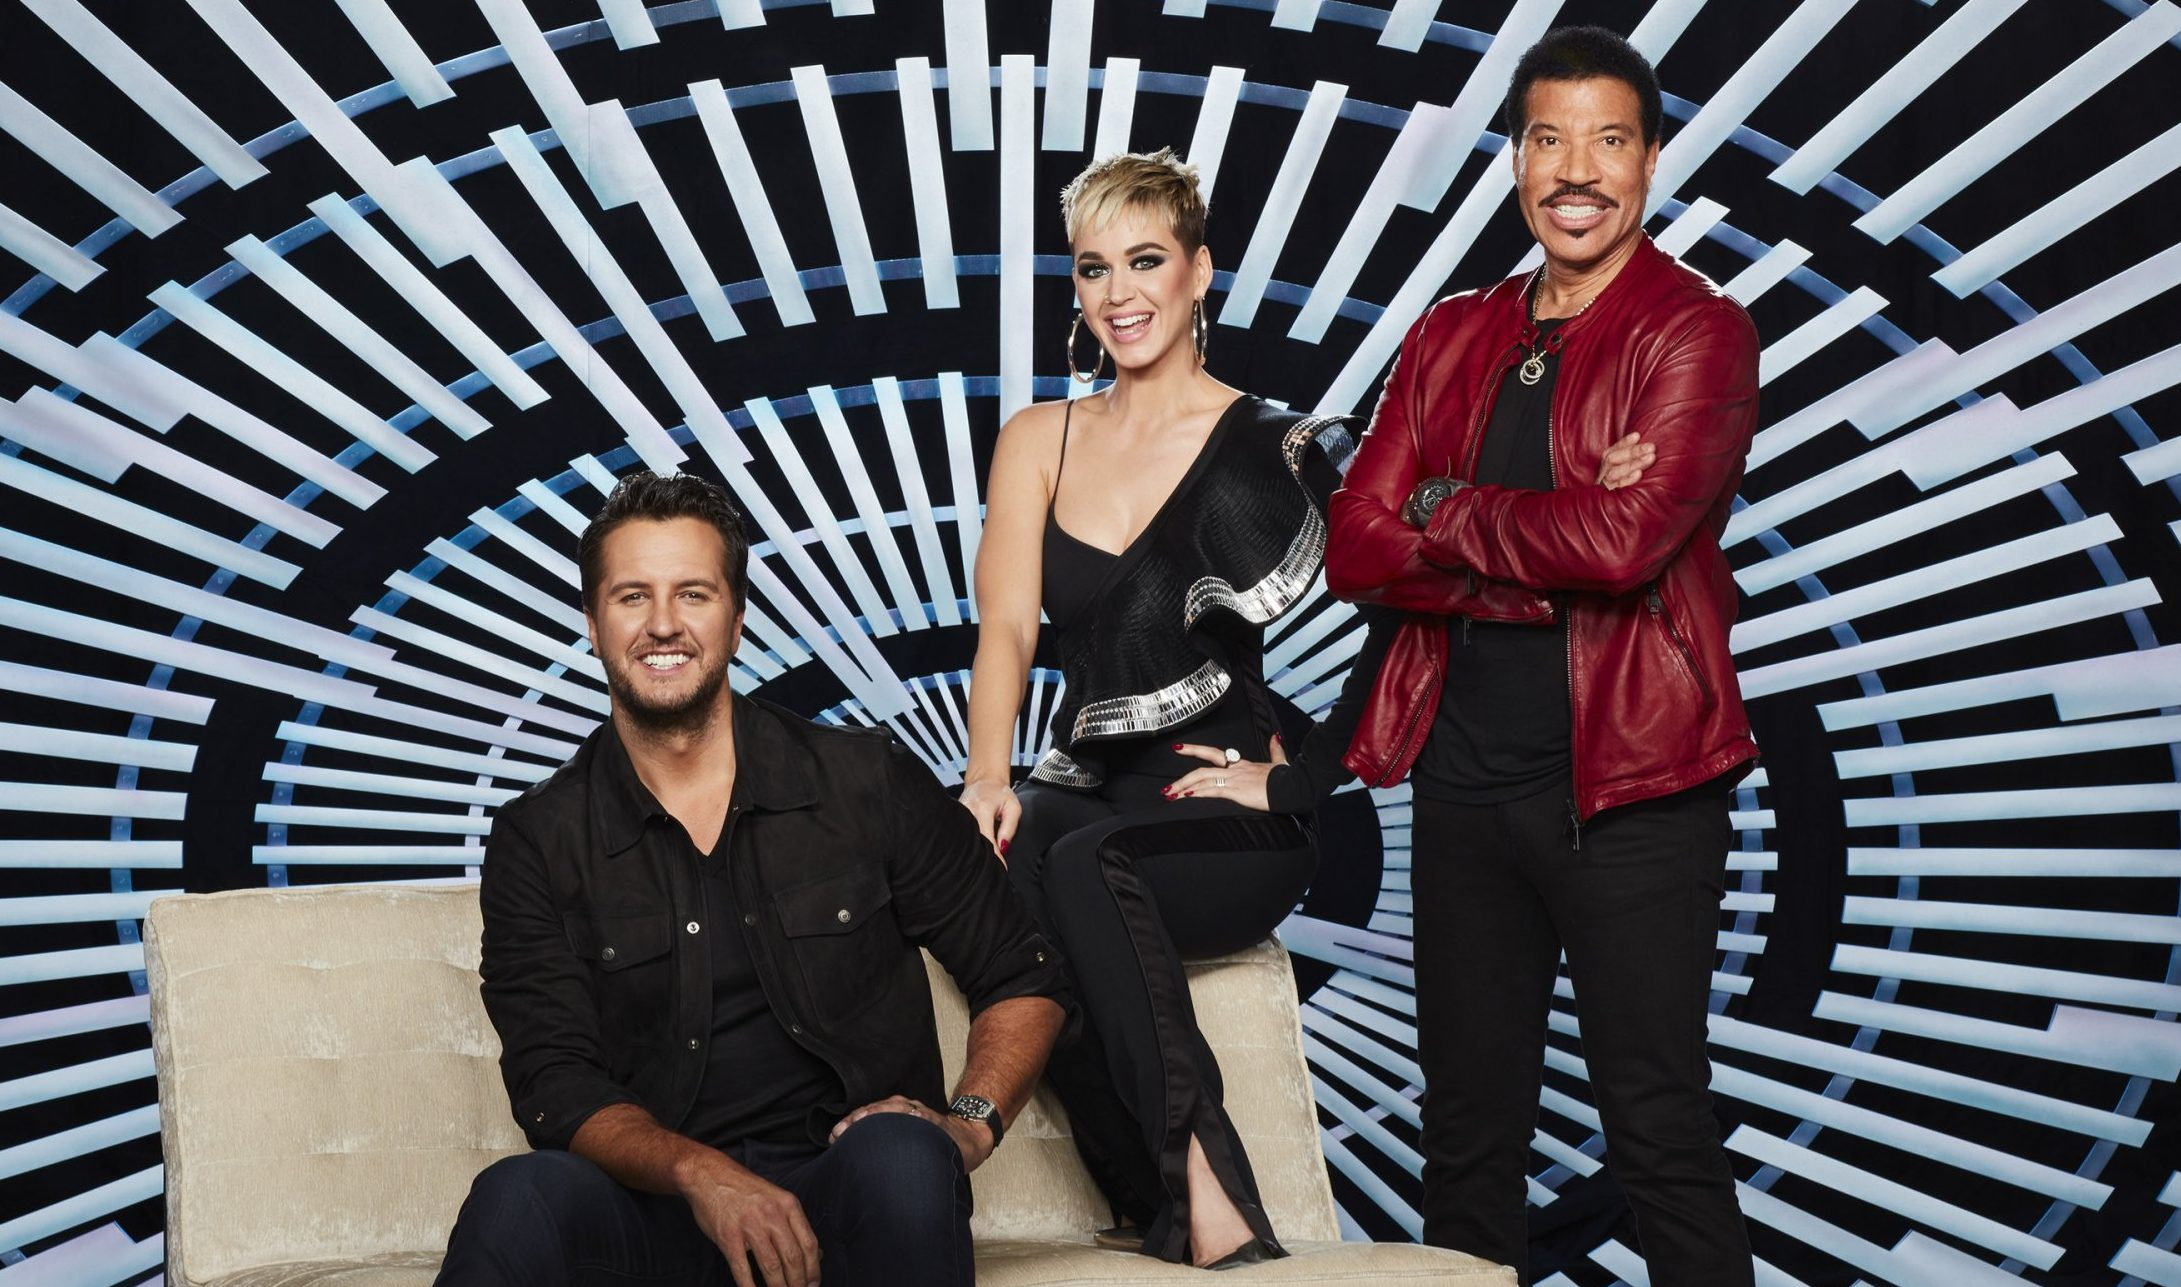 Who are the new American Idol judges 2018 and how to watch it in the UK